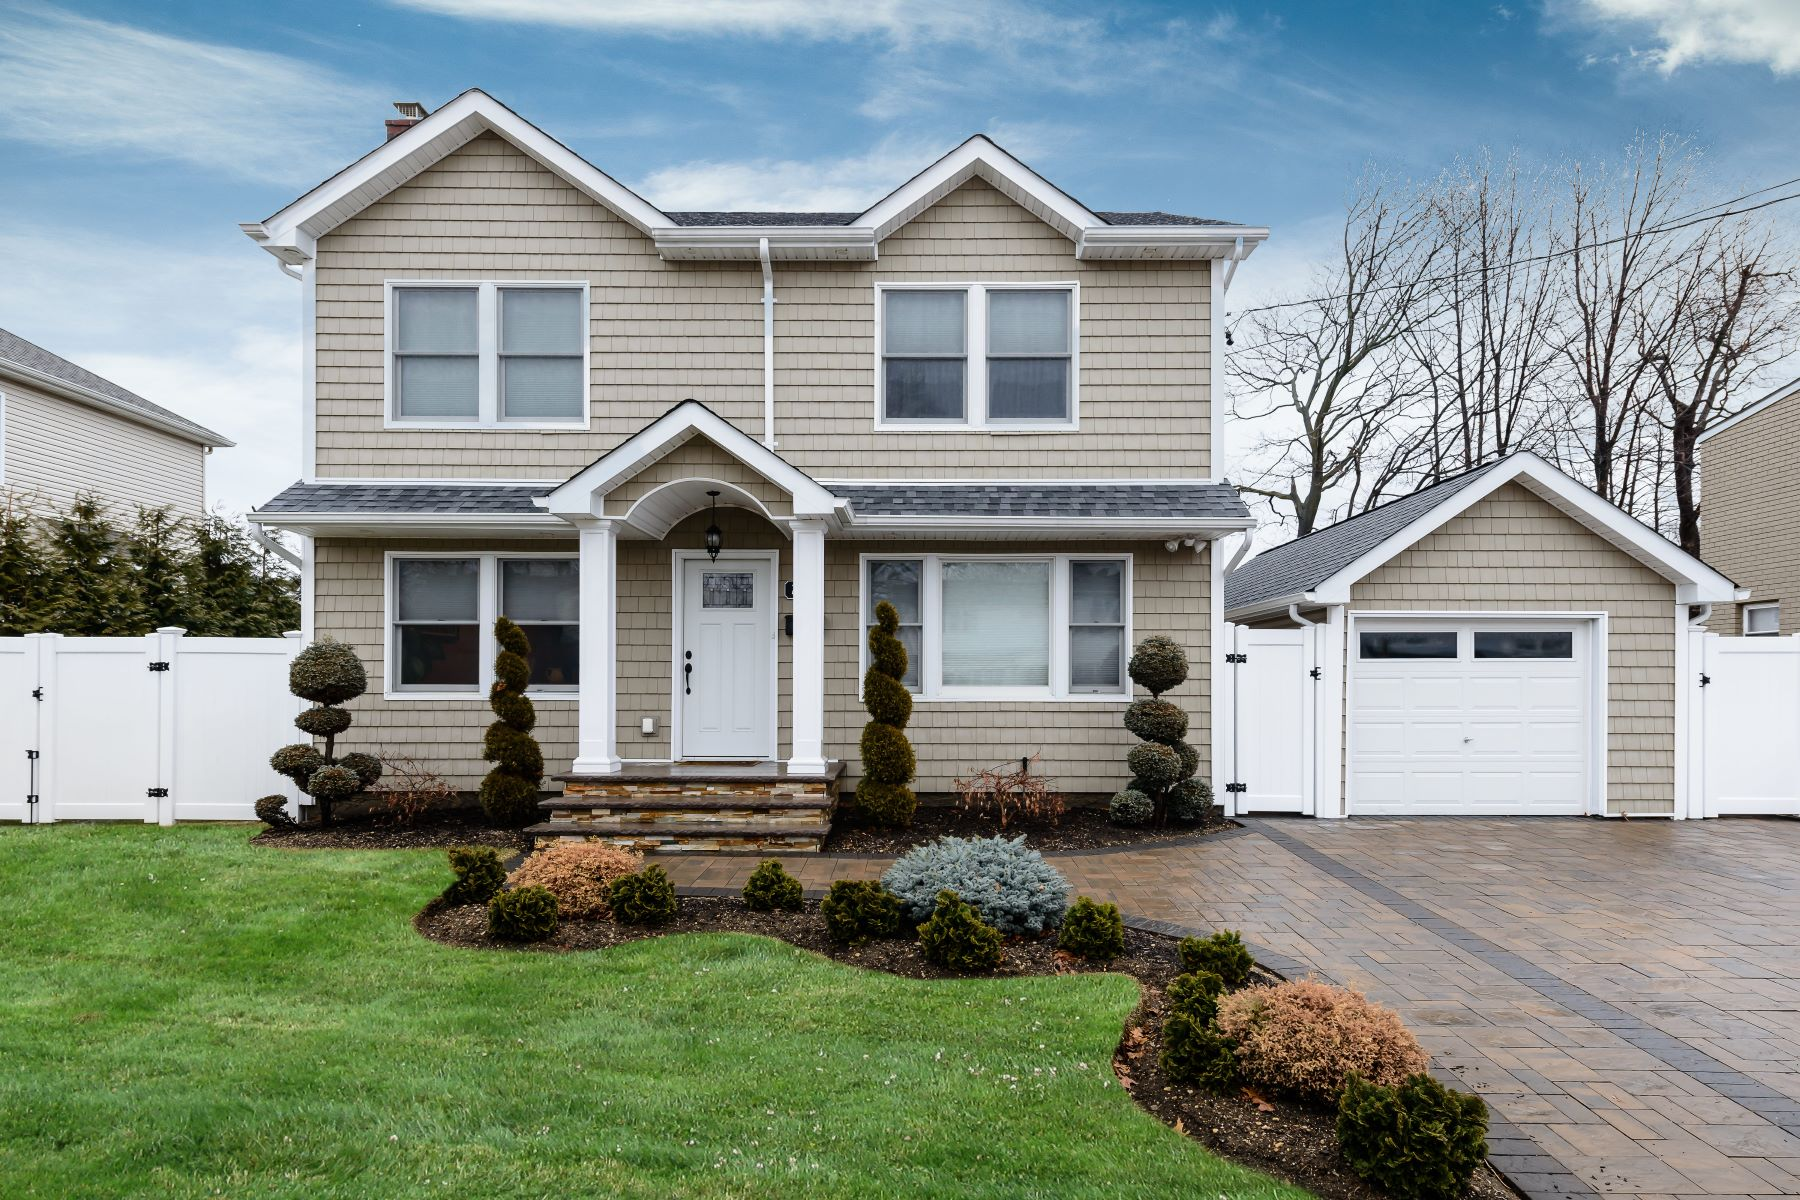 Single Family Home for Sale at 2347 7th St , East Meadow, NY 11554 2347 7th St, East Meadow, New York, 11554 United States